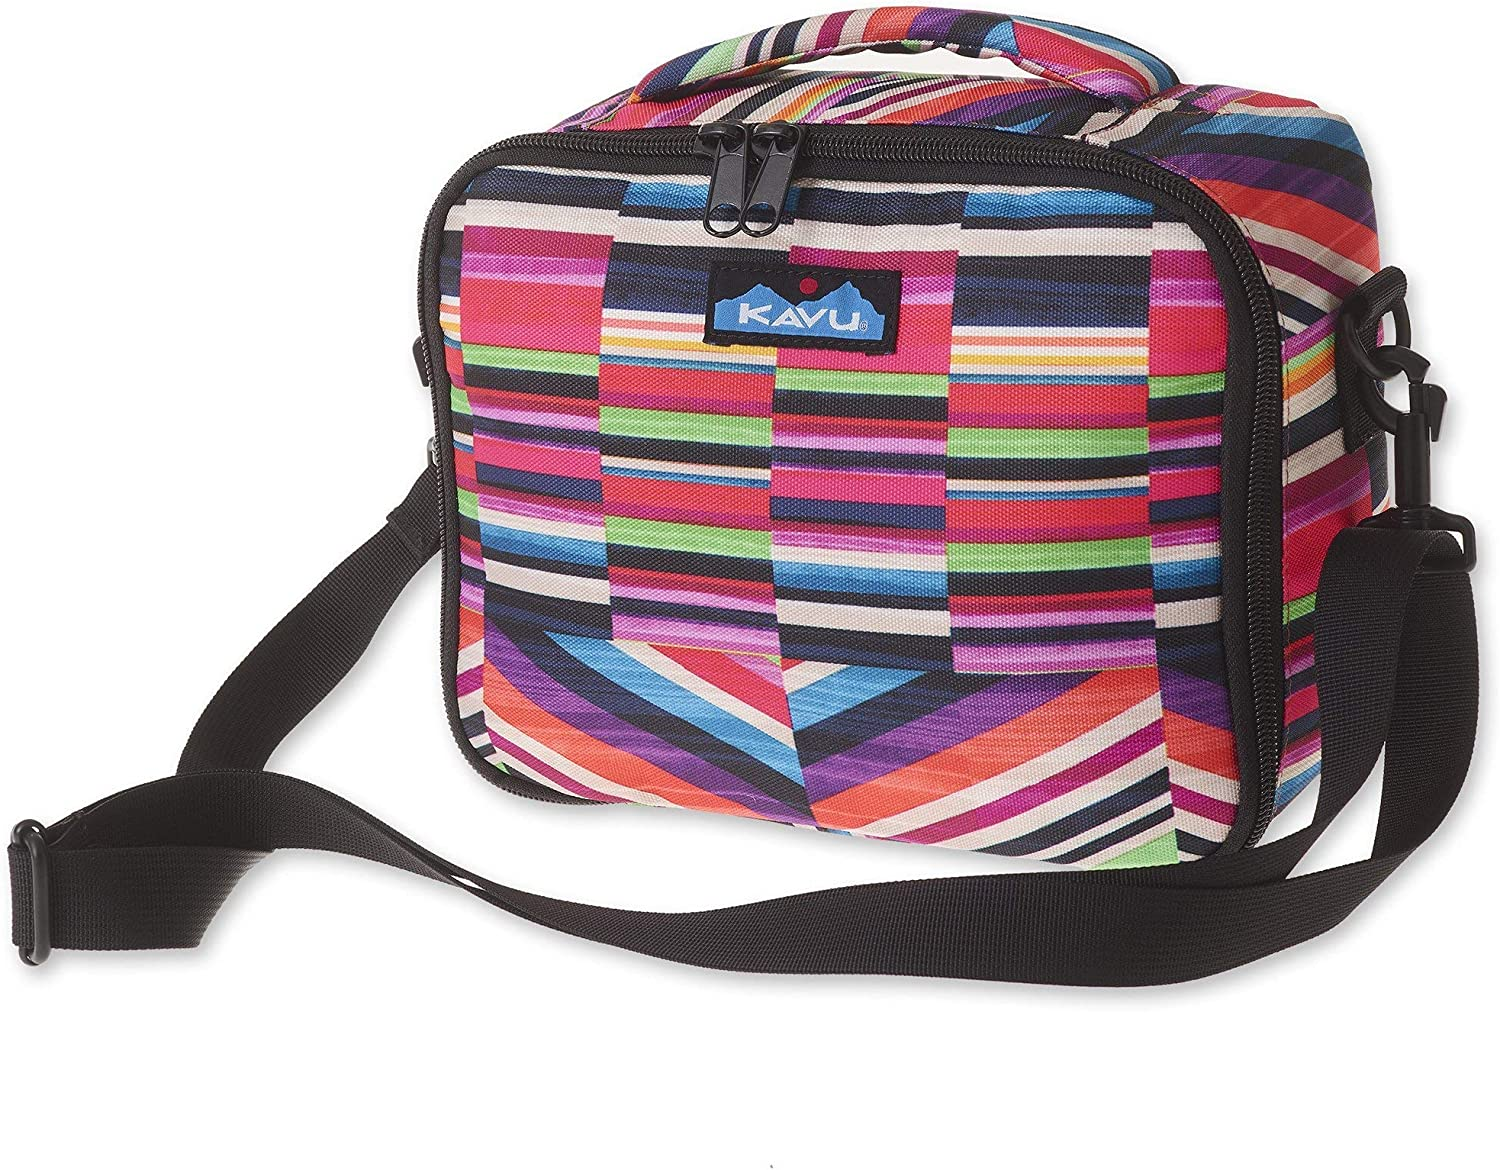 KAVU Lunch Box Insulated Padded Leak Proof Crossbody Meal Pack